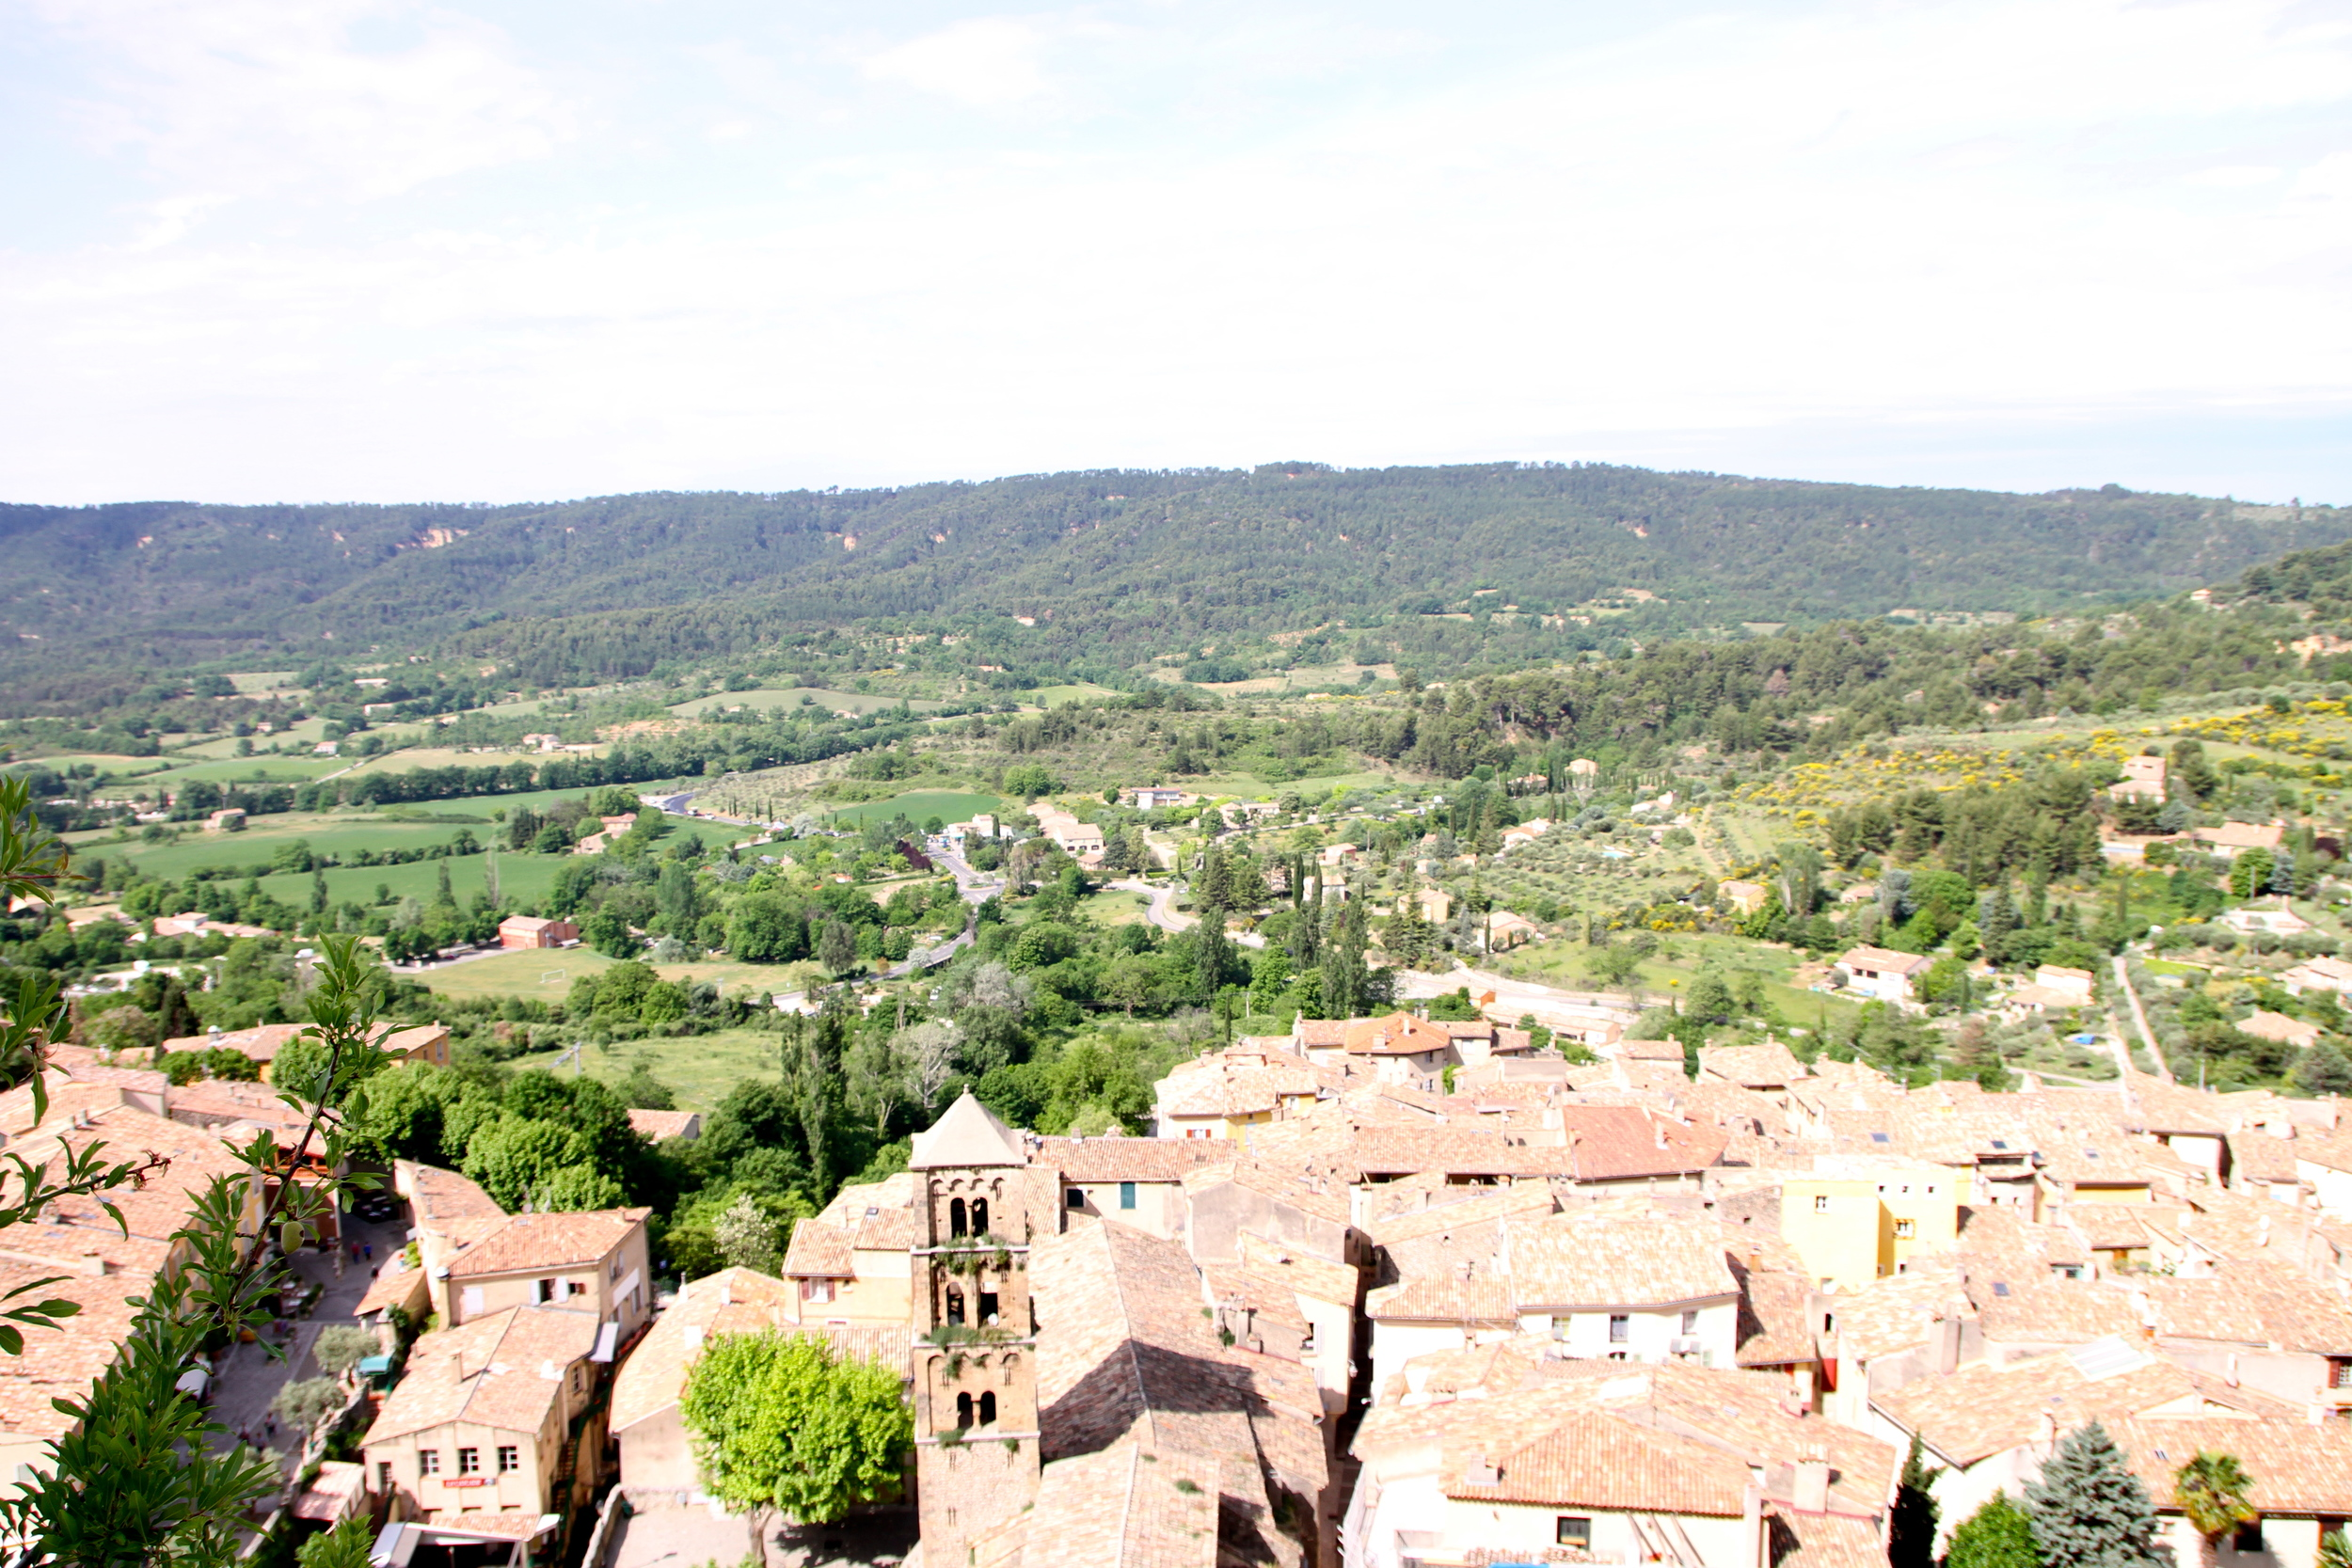 View over Moustiers-Sainte-Marie.